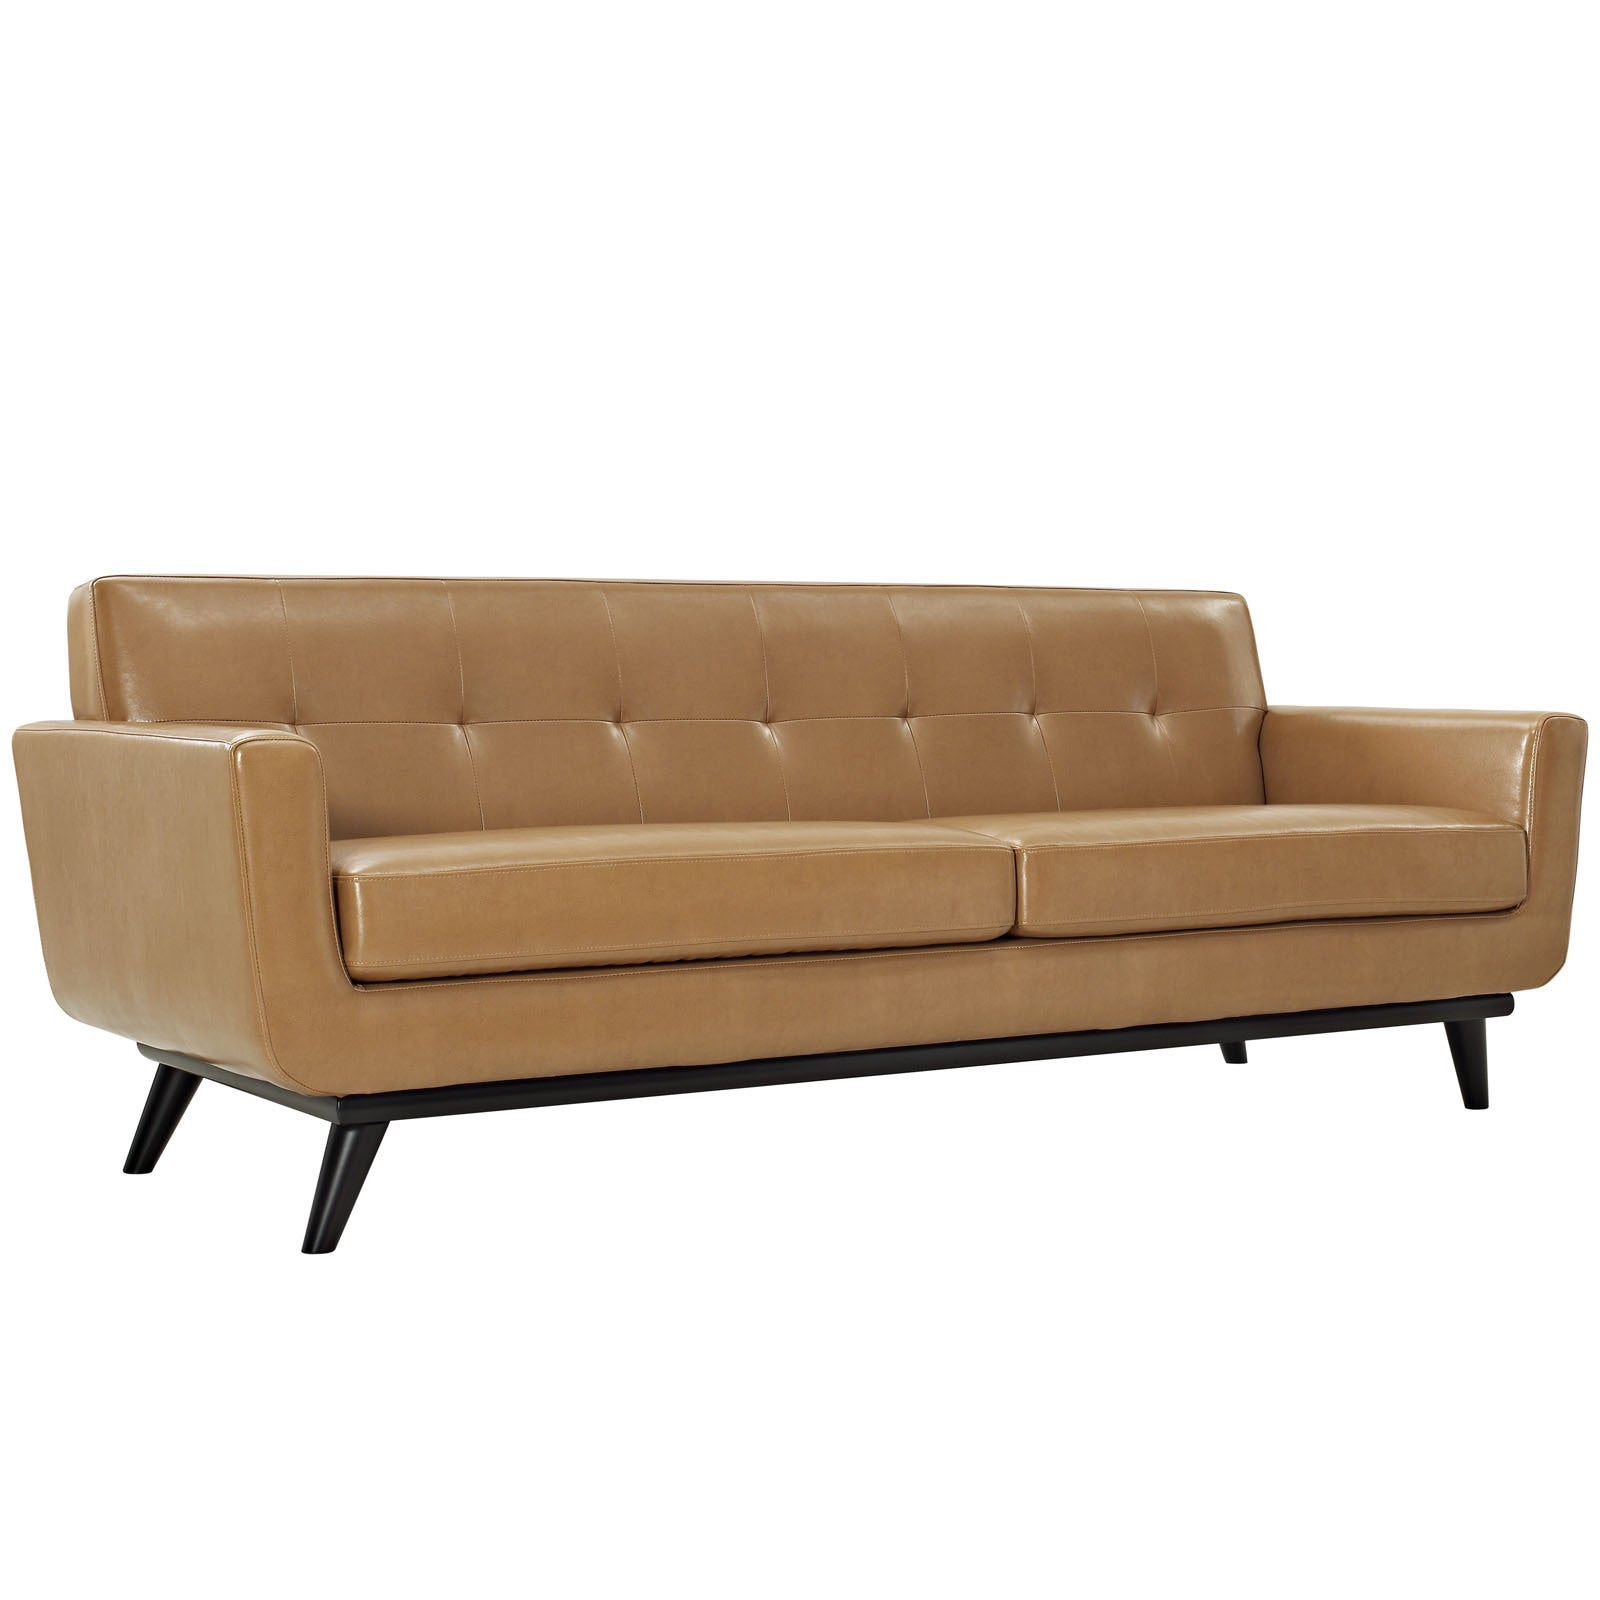 Engage Tan Leather Mid Century Sofa   Free Shipping Today   Overstock.com    16692931